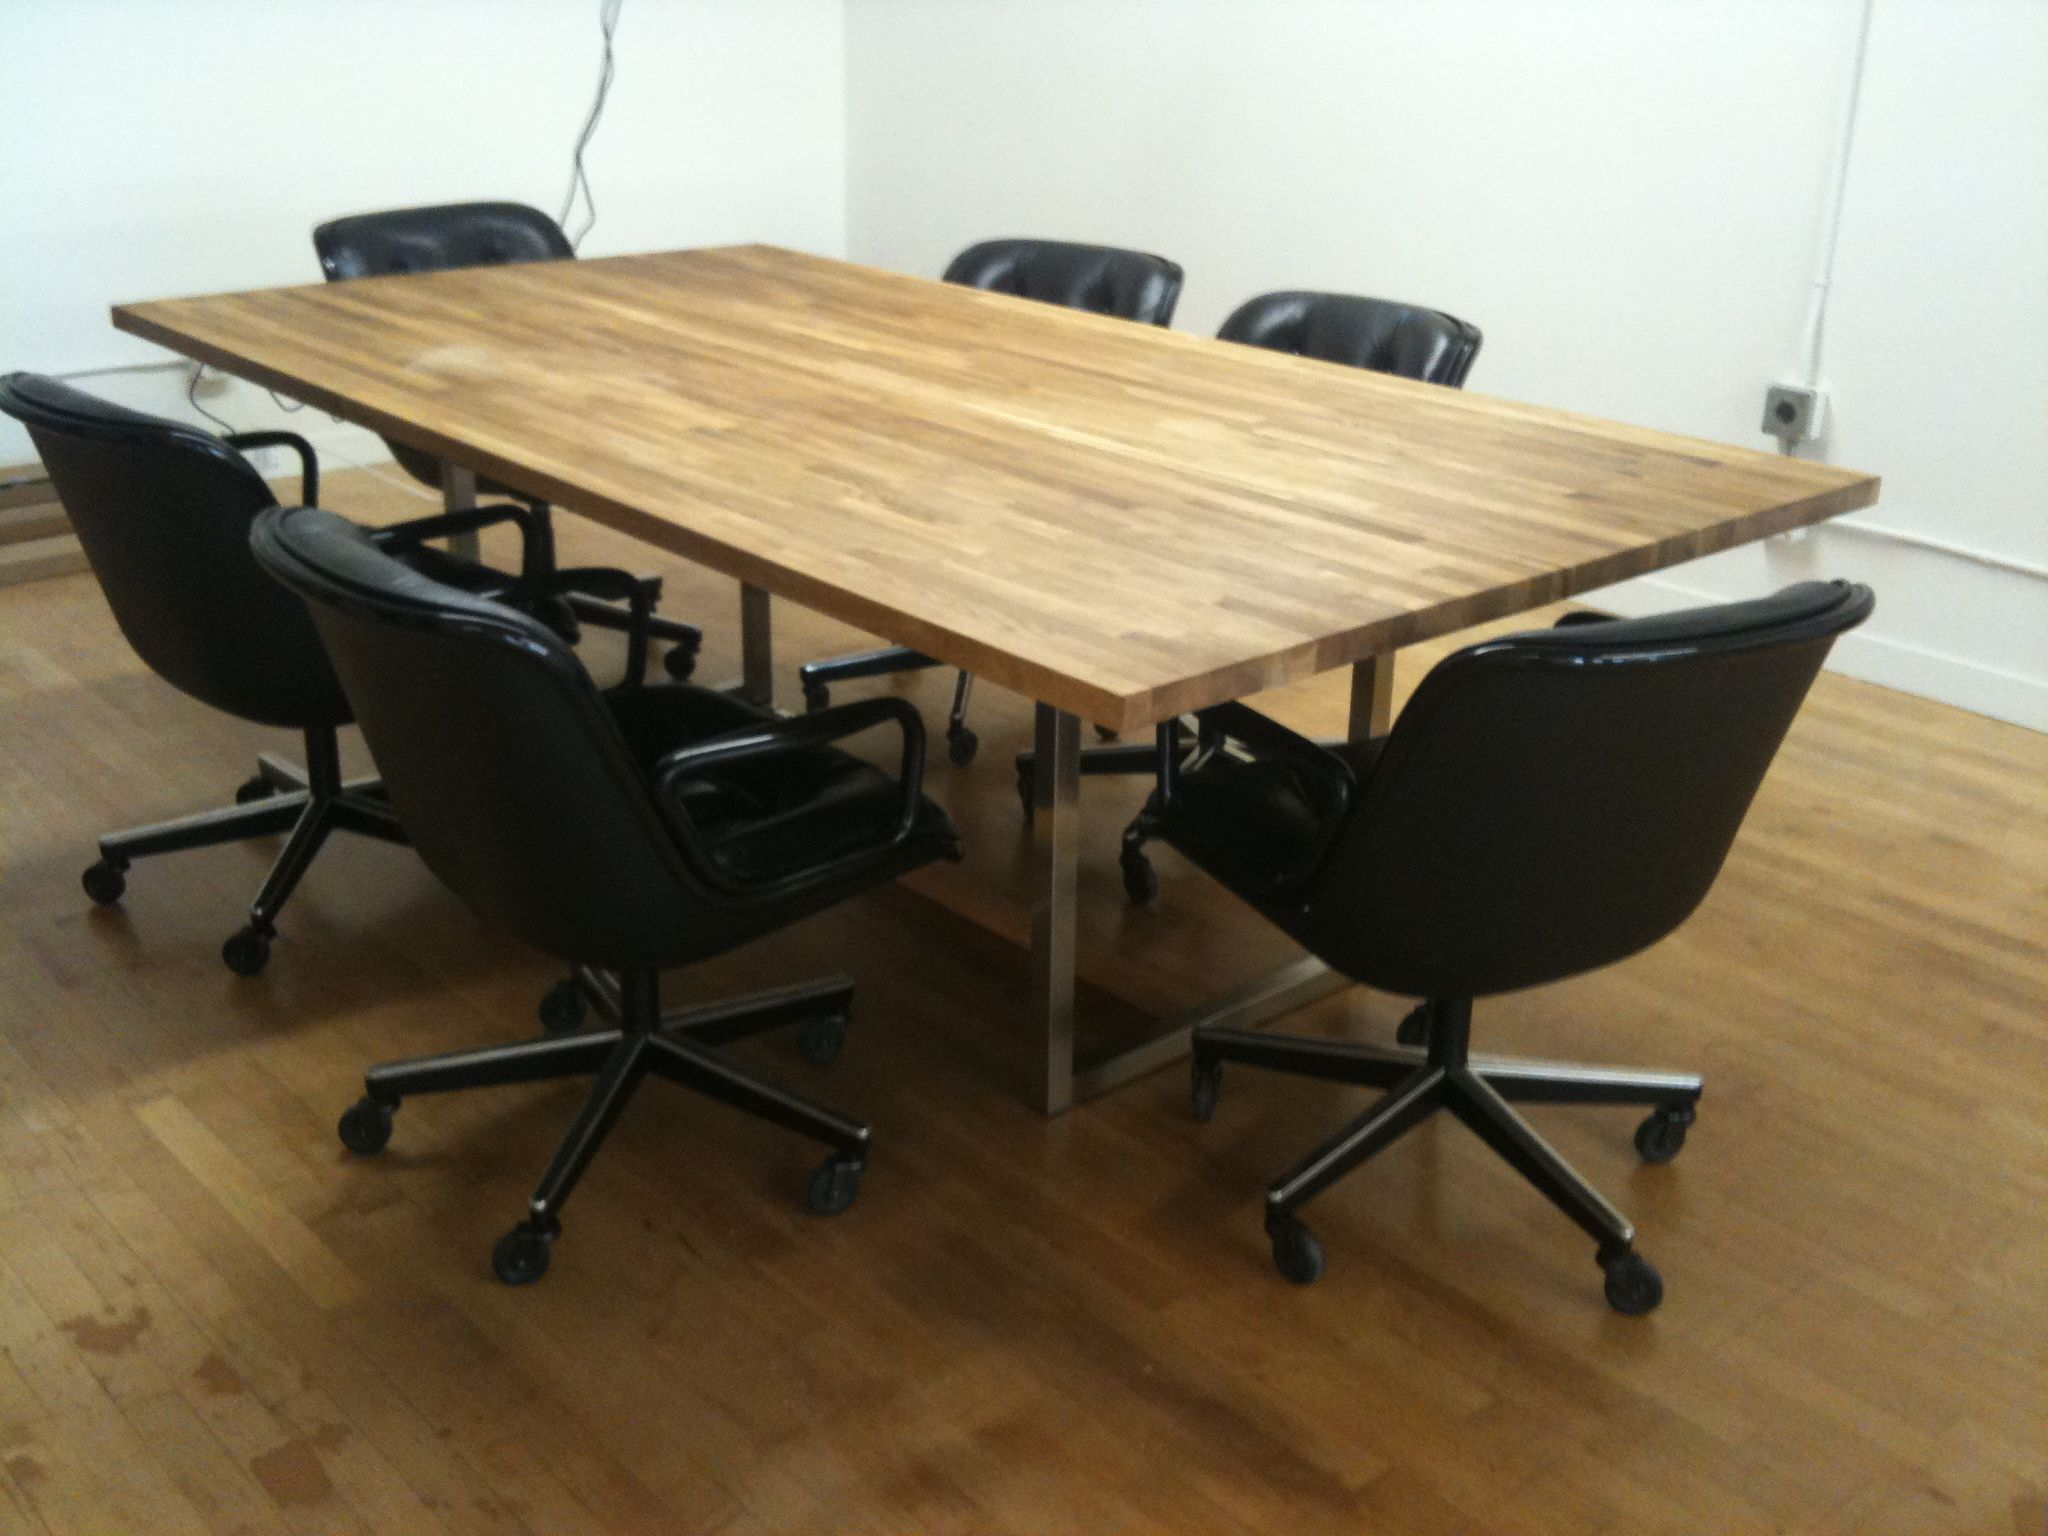 a 441 oaksteel conference table